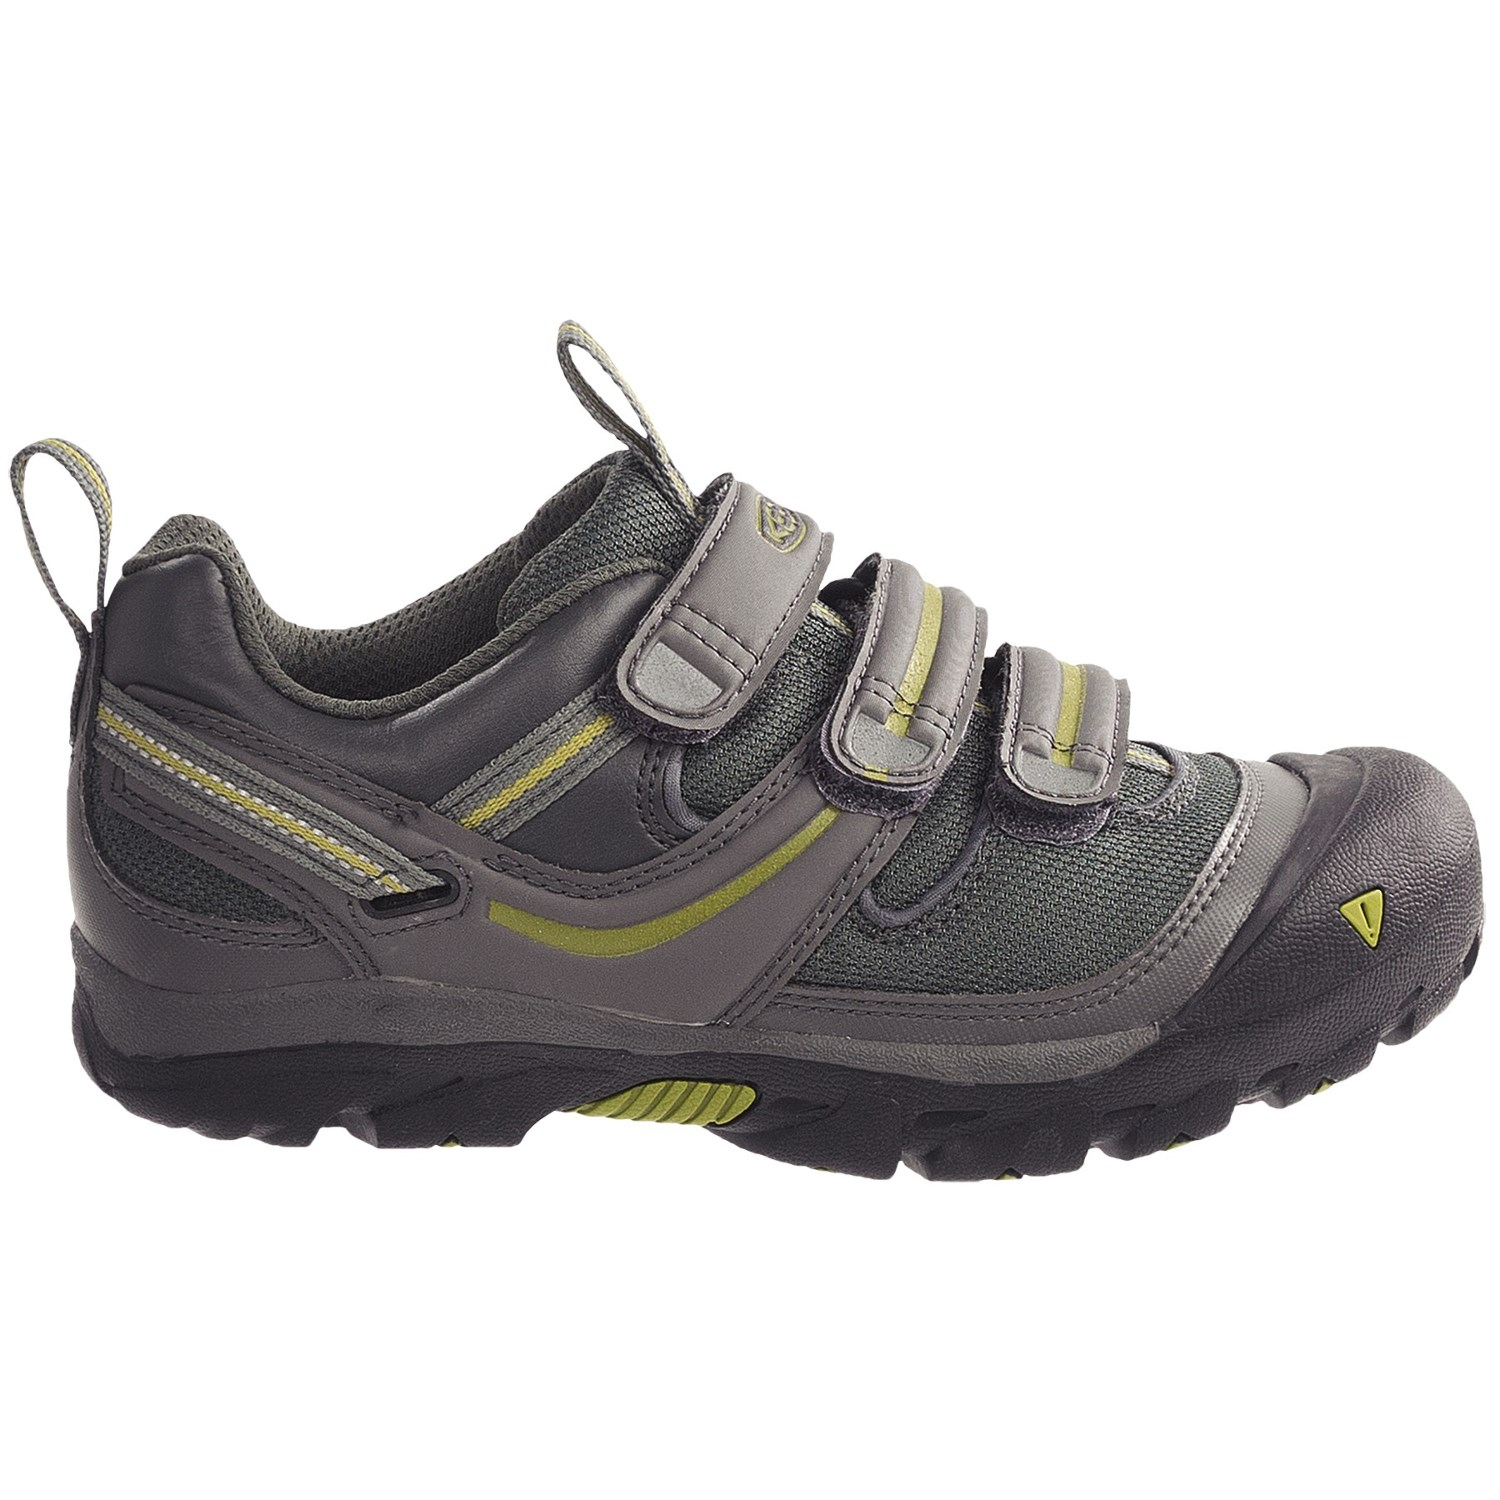 Keen SPRINGWATER II 2012 - Specifications | Reviews | Shops